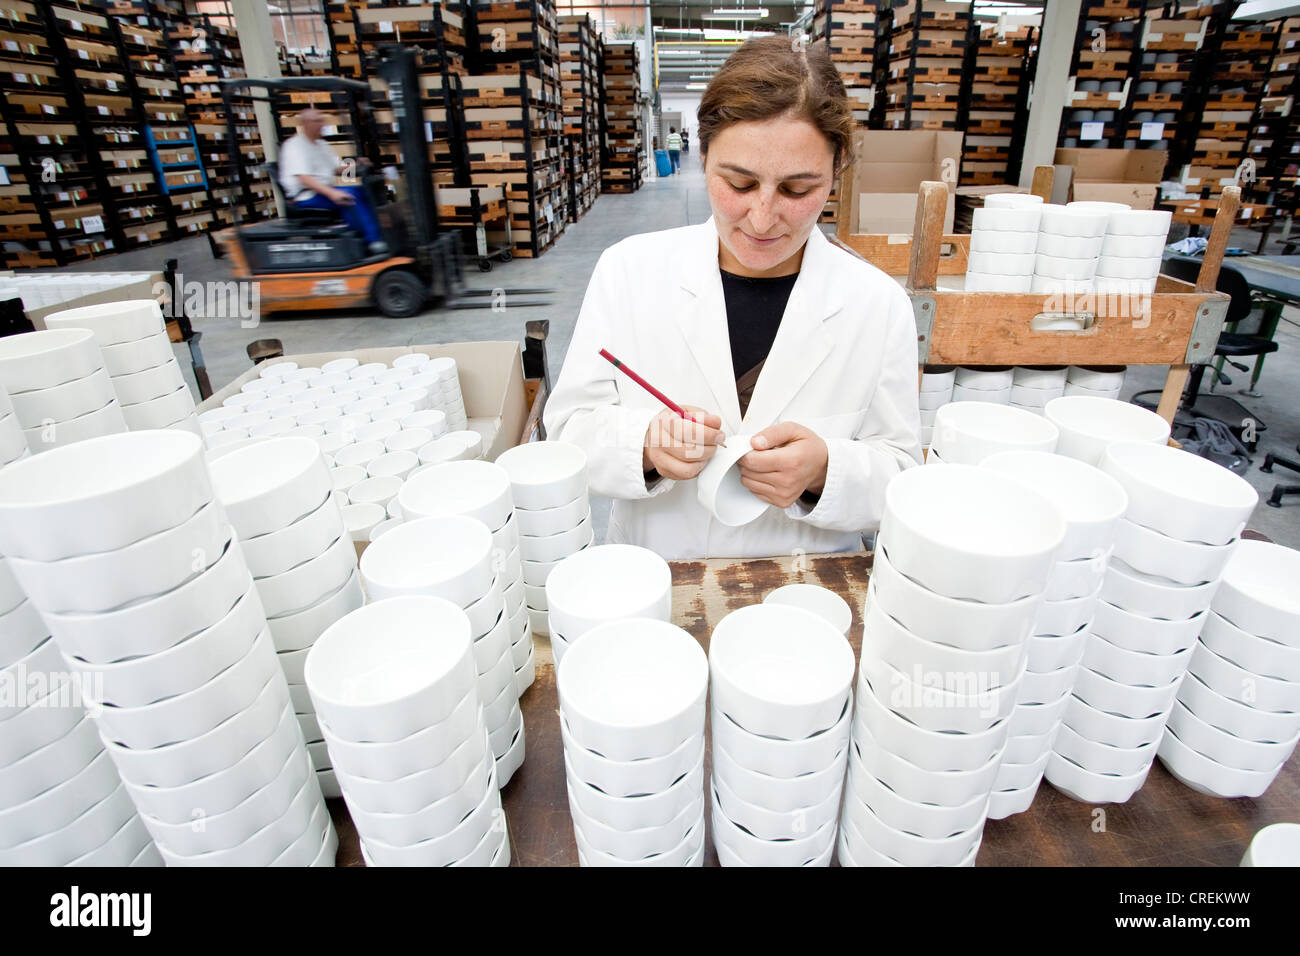 Employee during the final sorting of soup bowls from Rosenthal in the production of tableware at the porcelain manufacturer - Stock Image